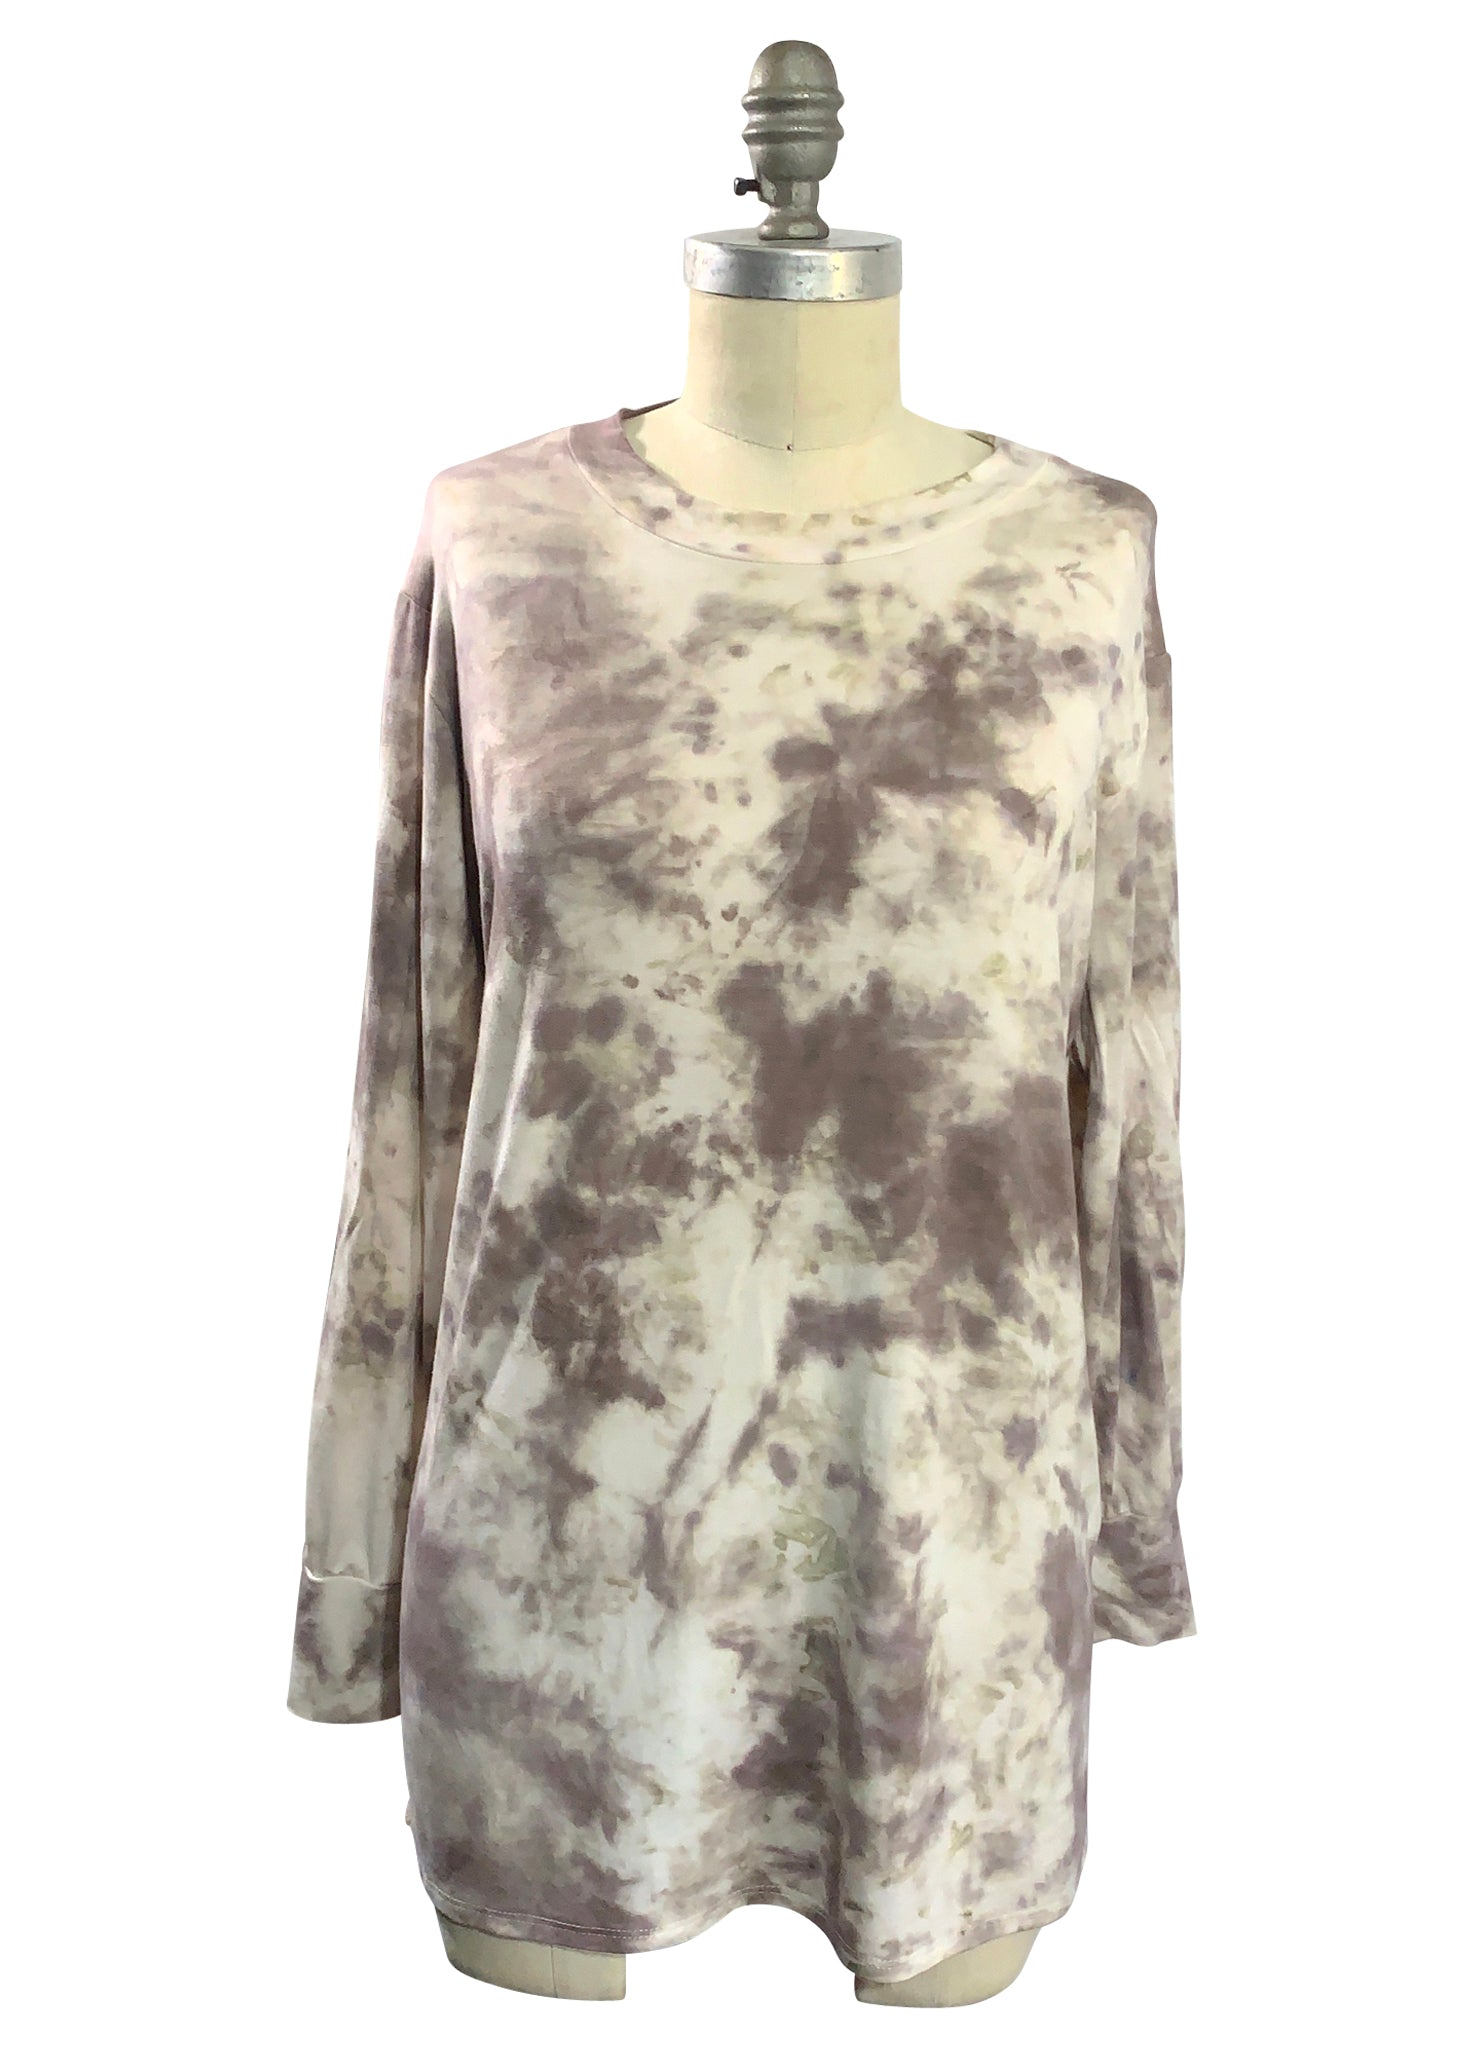 Mocha Tunic and Seaglass Scarf BUNDLE - Top - Dyetology